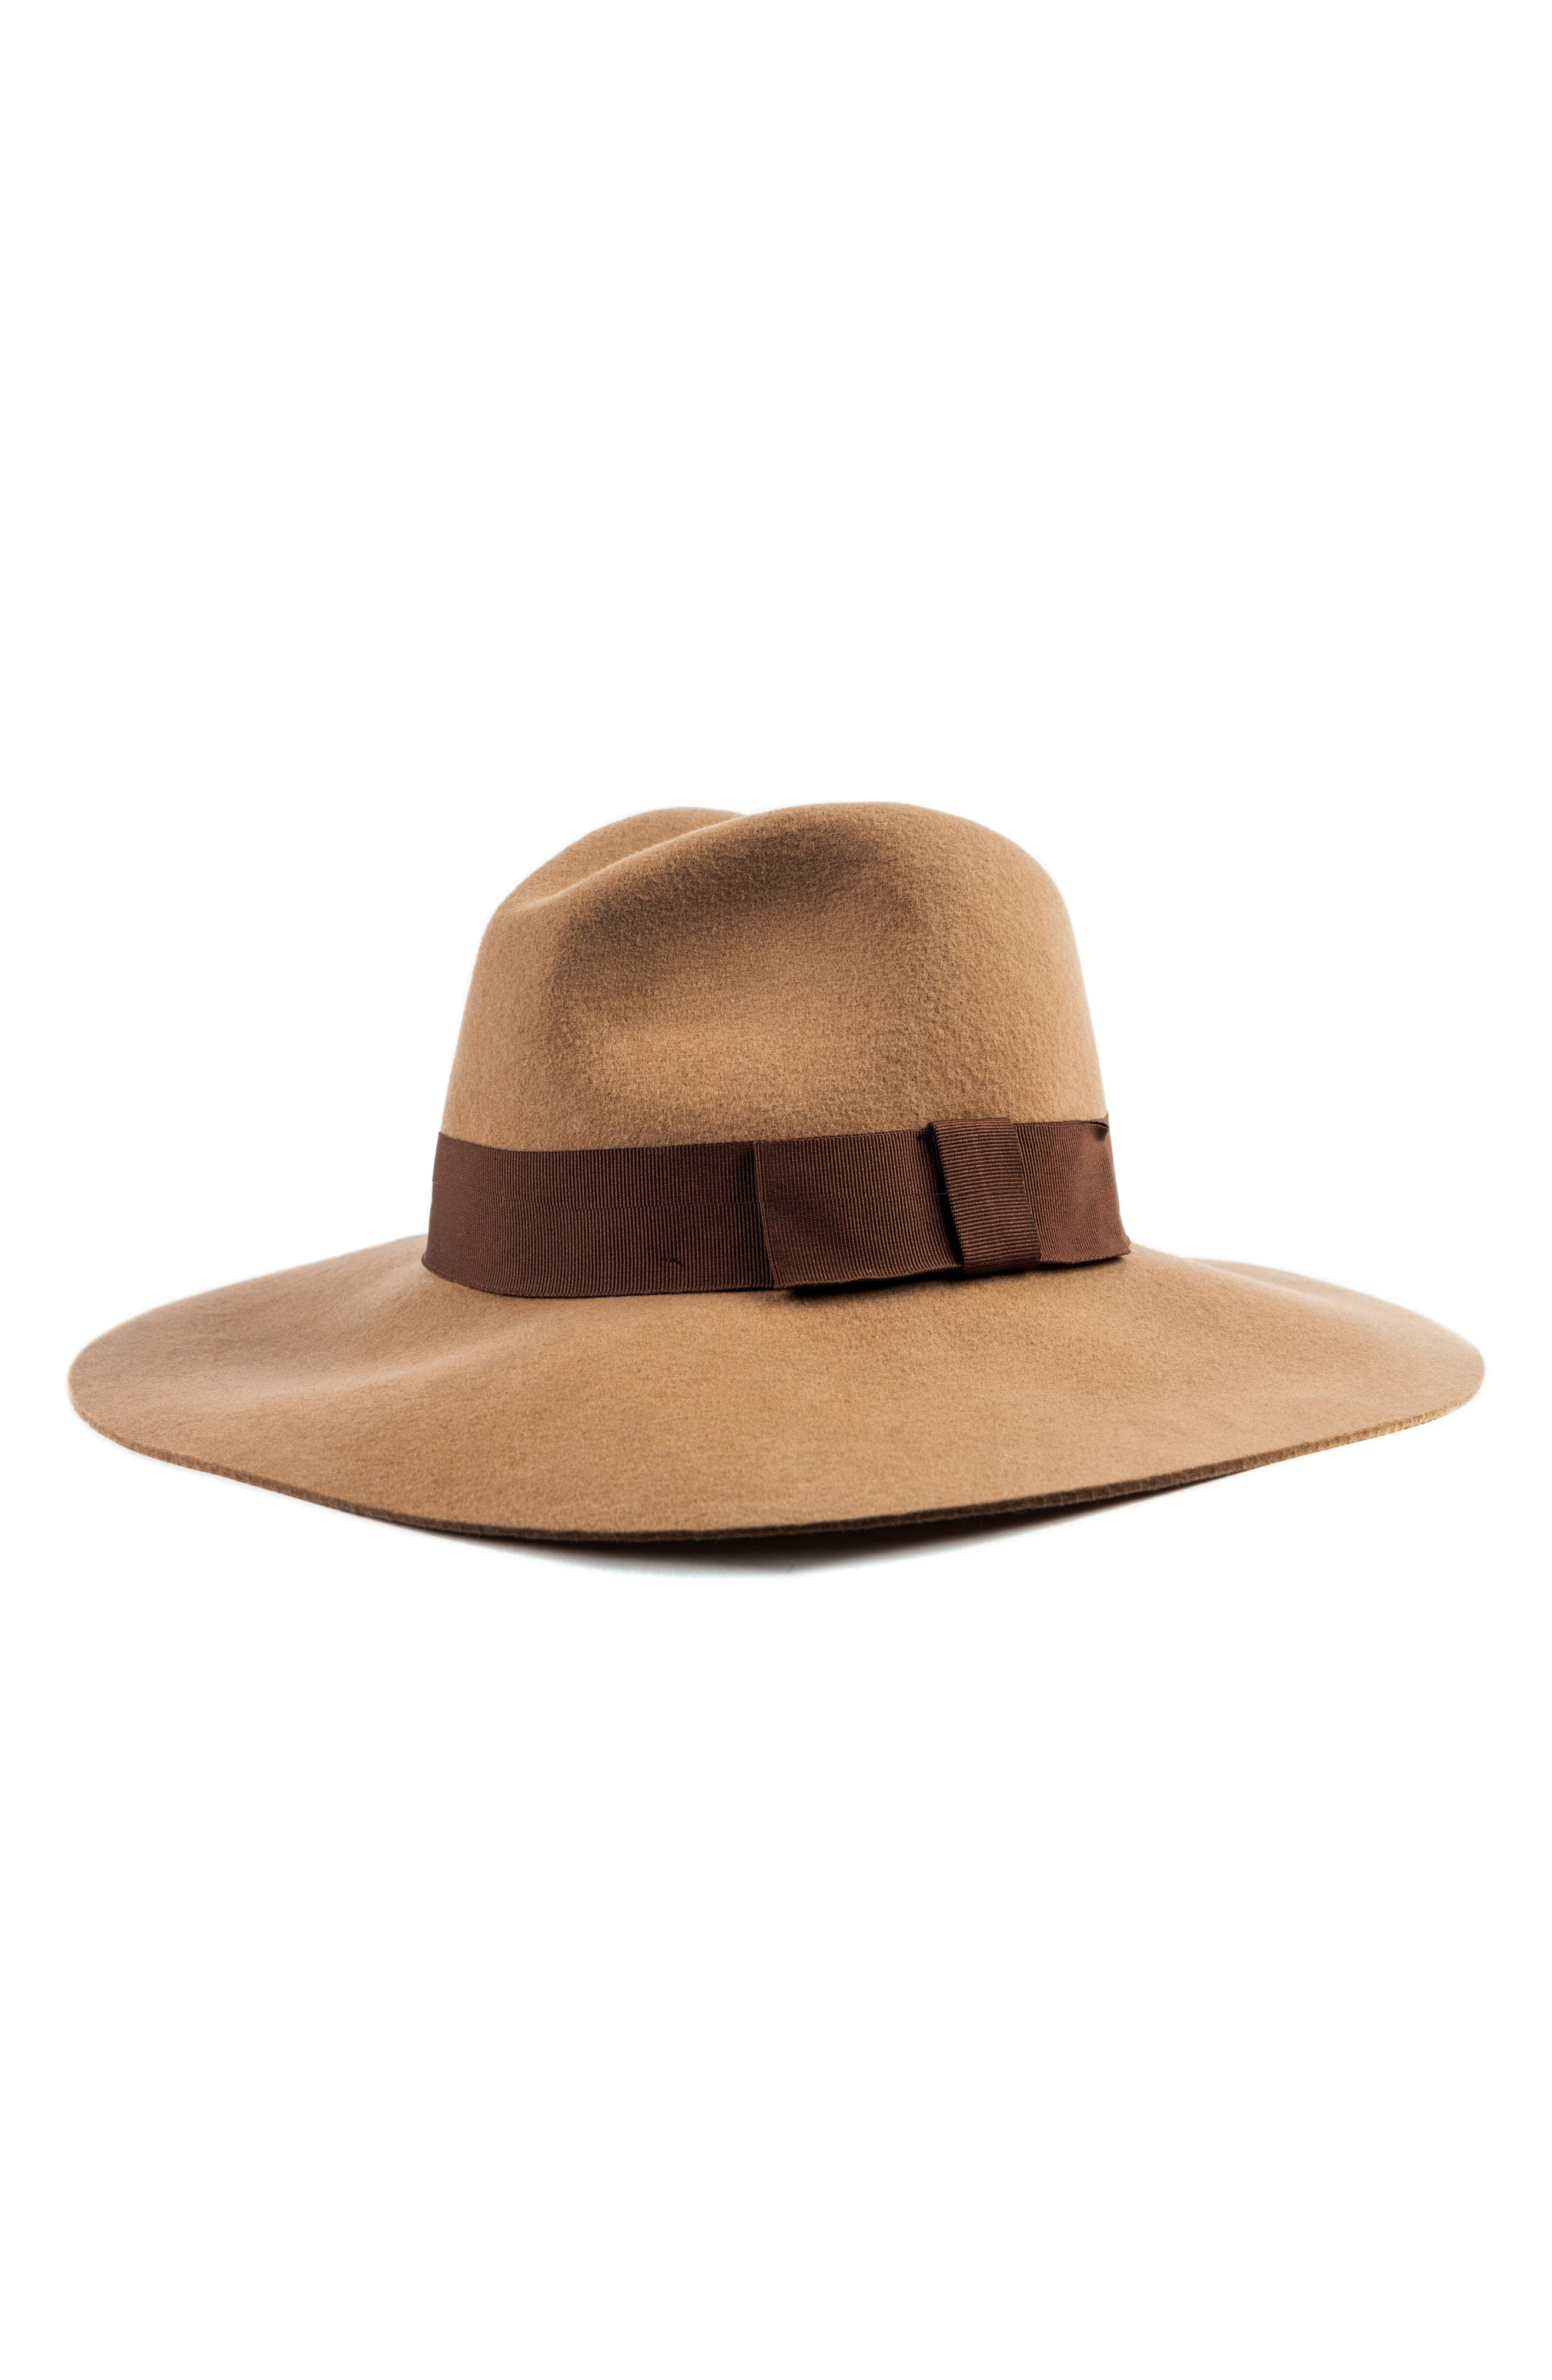 BRIXTON 'Piper' Floppy Wool Hat, Main, color, TAN/ DARK BROWN